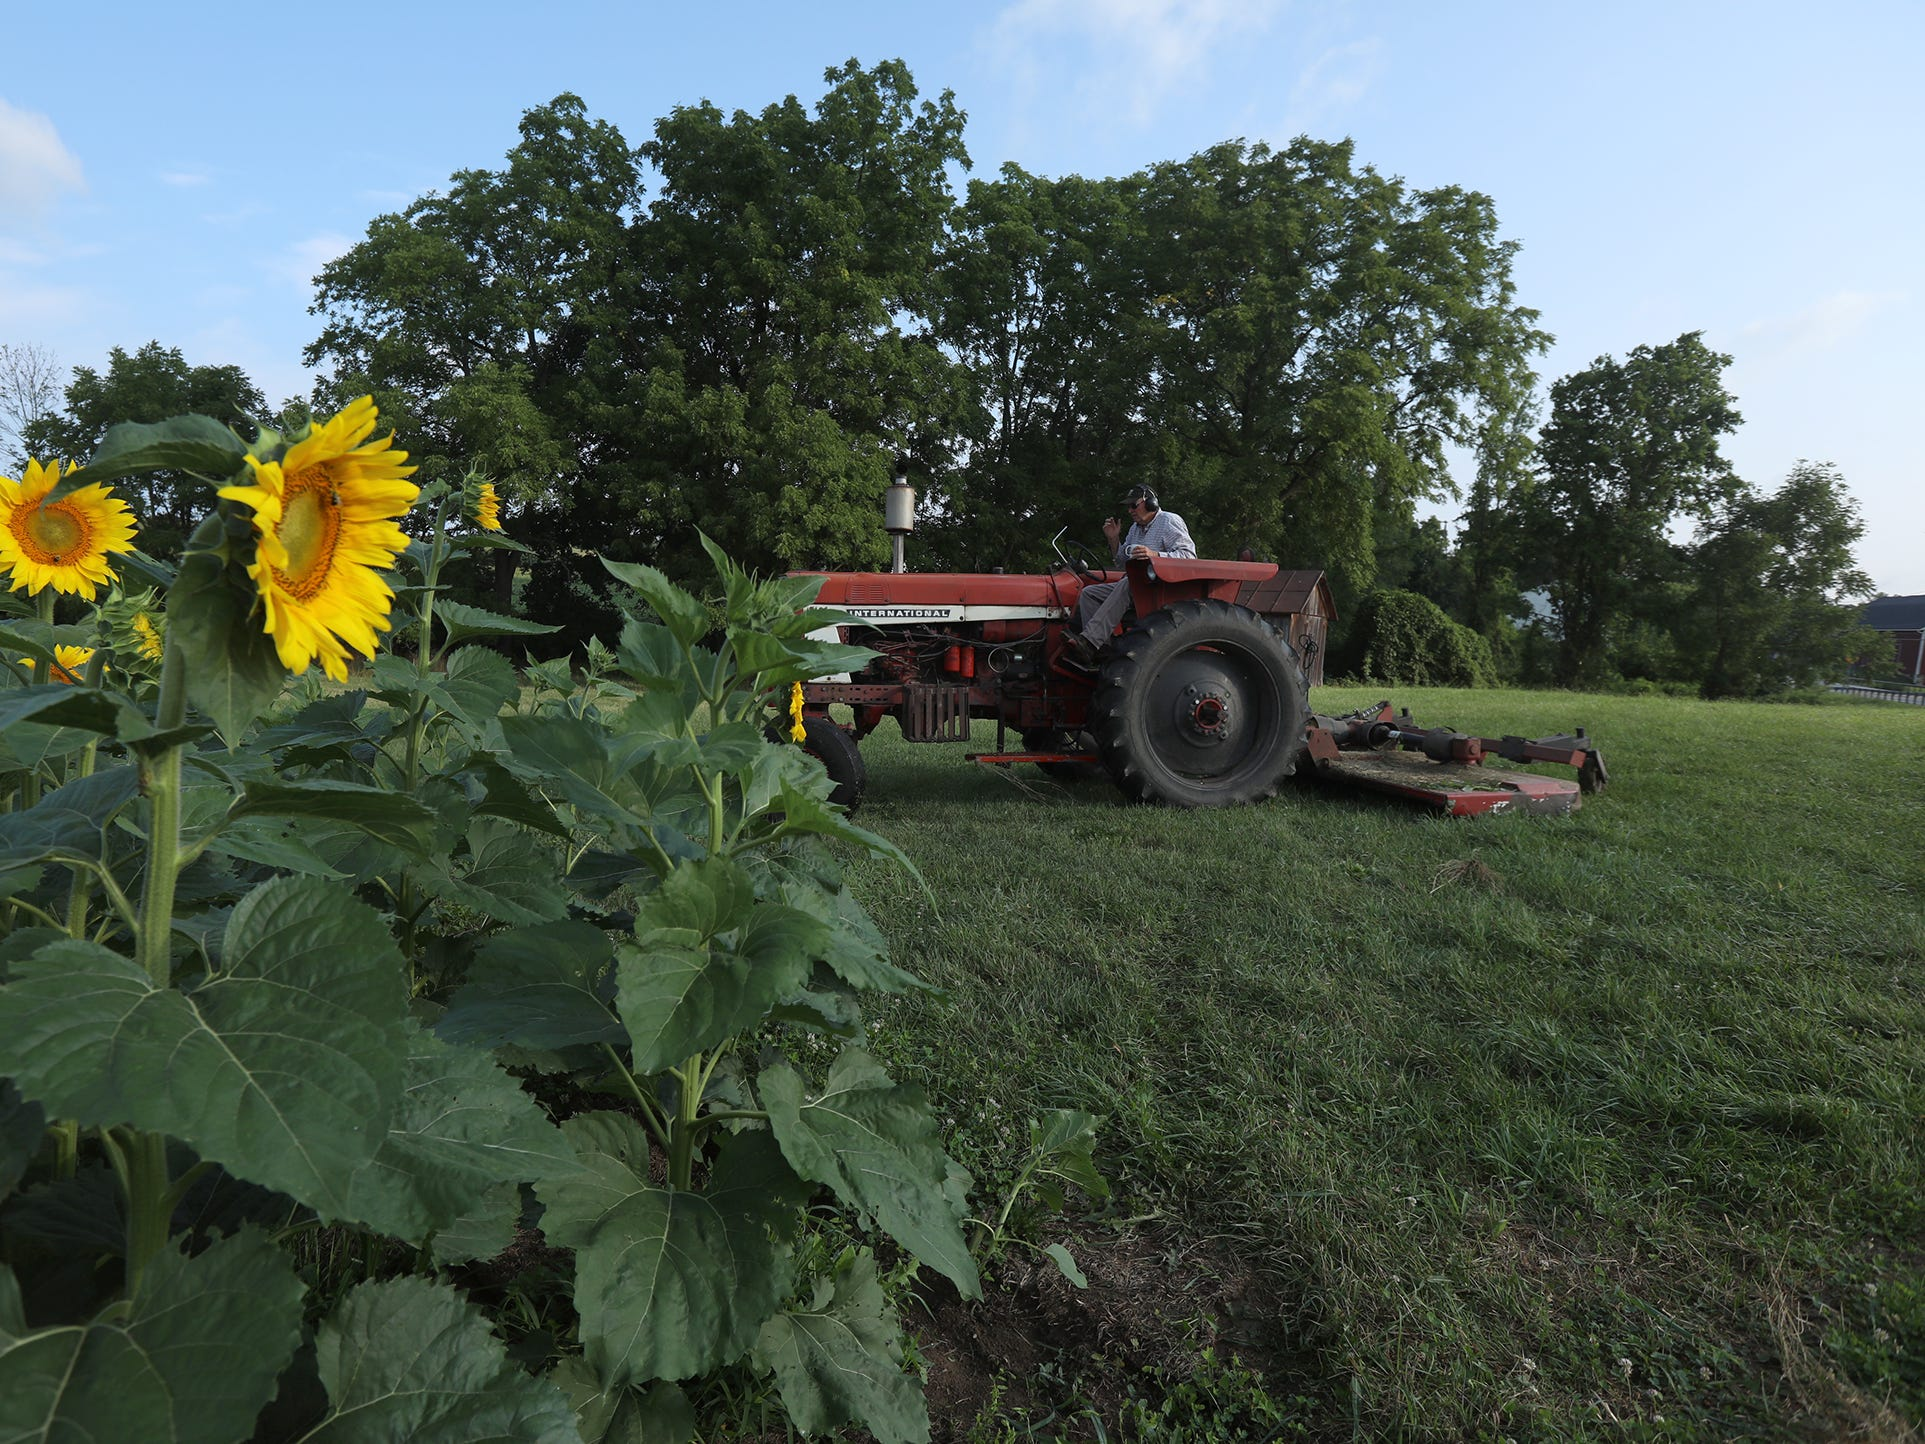 Mark Greene, of Hopkins Family Farm in Pittsford, cuts the grass around the sunflowers that he grows for birdseed.